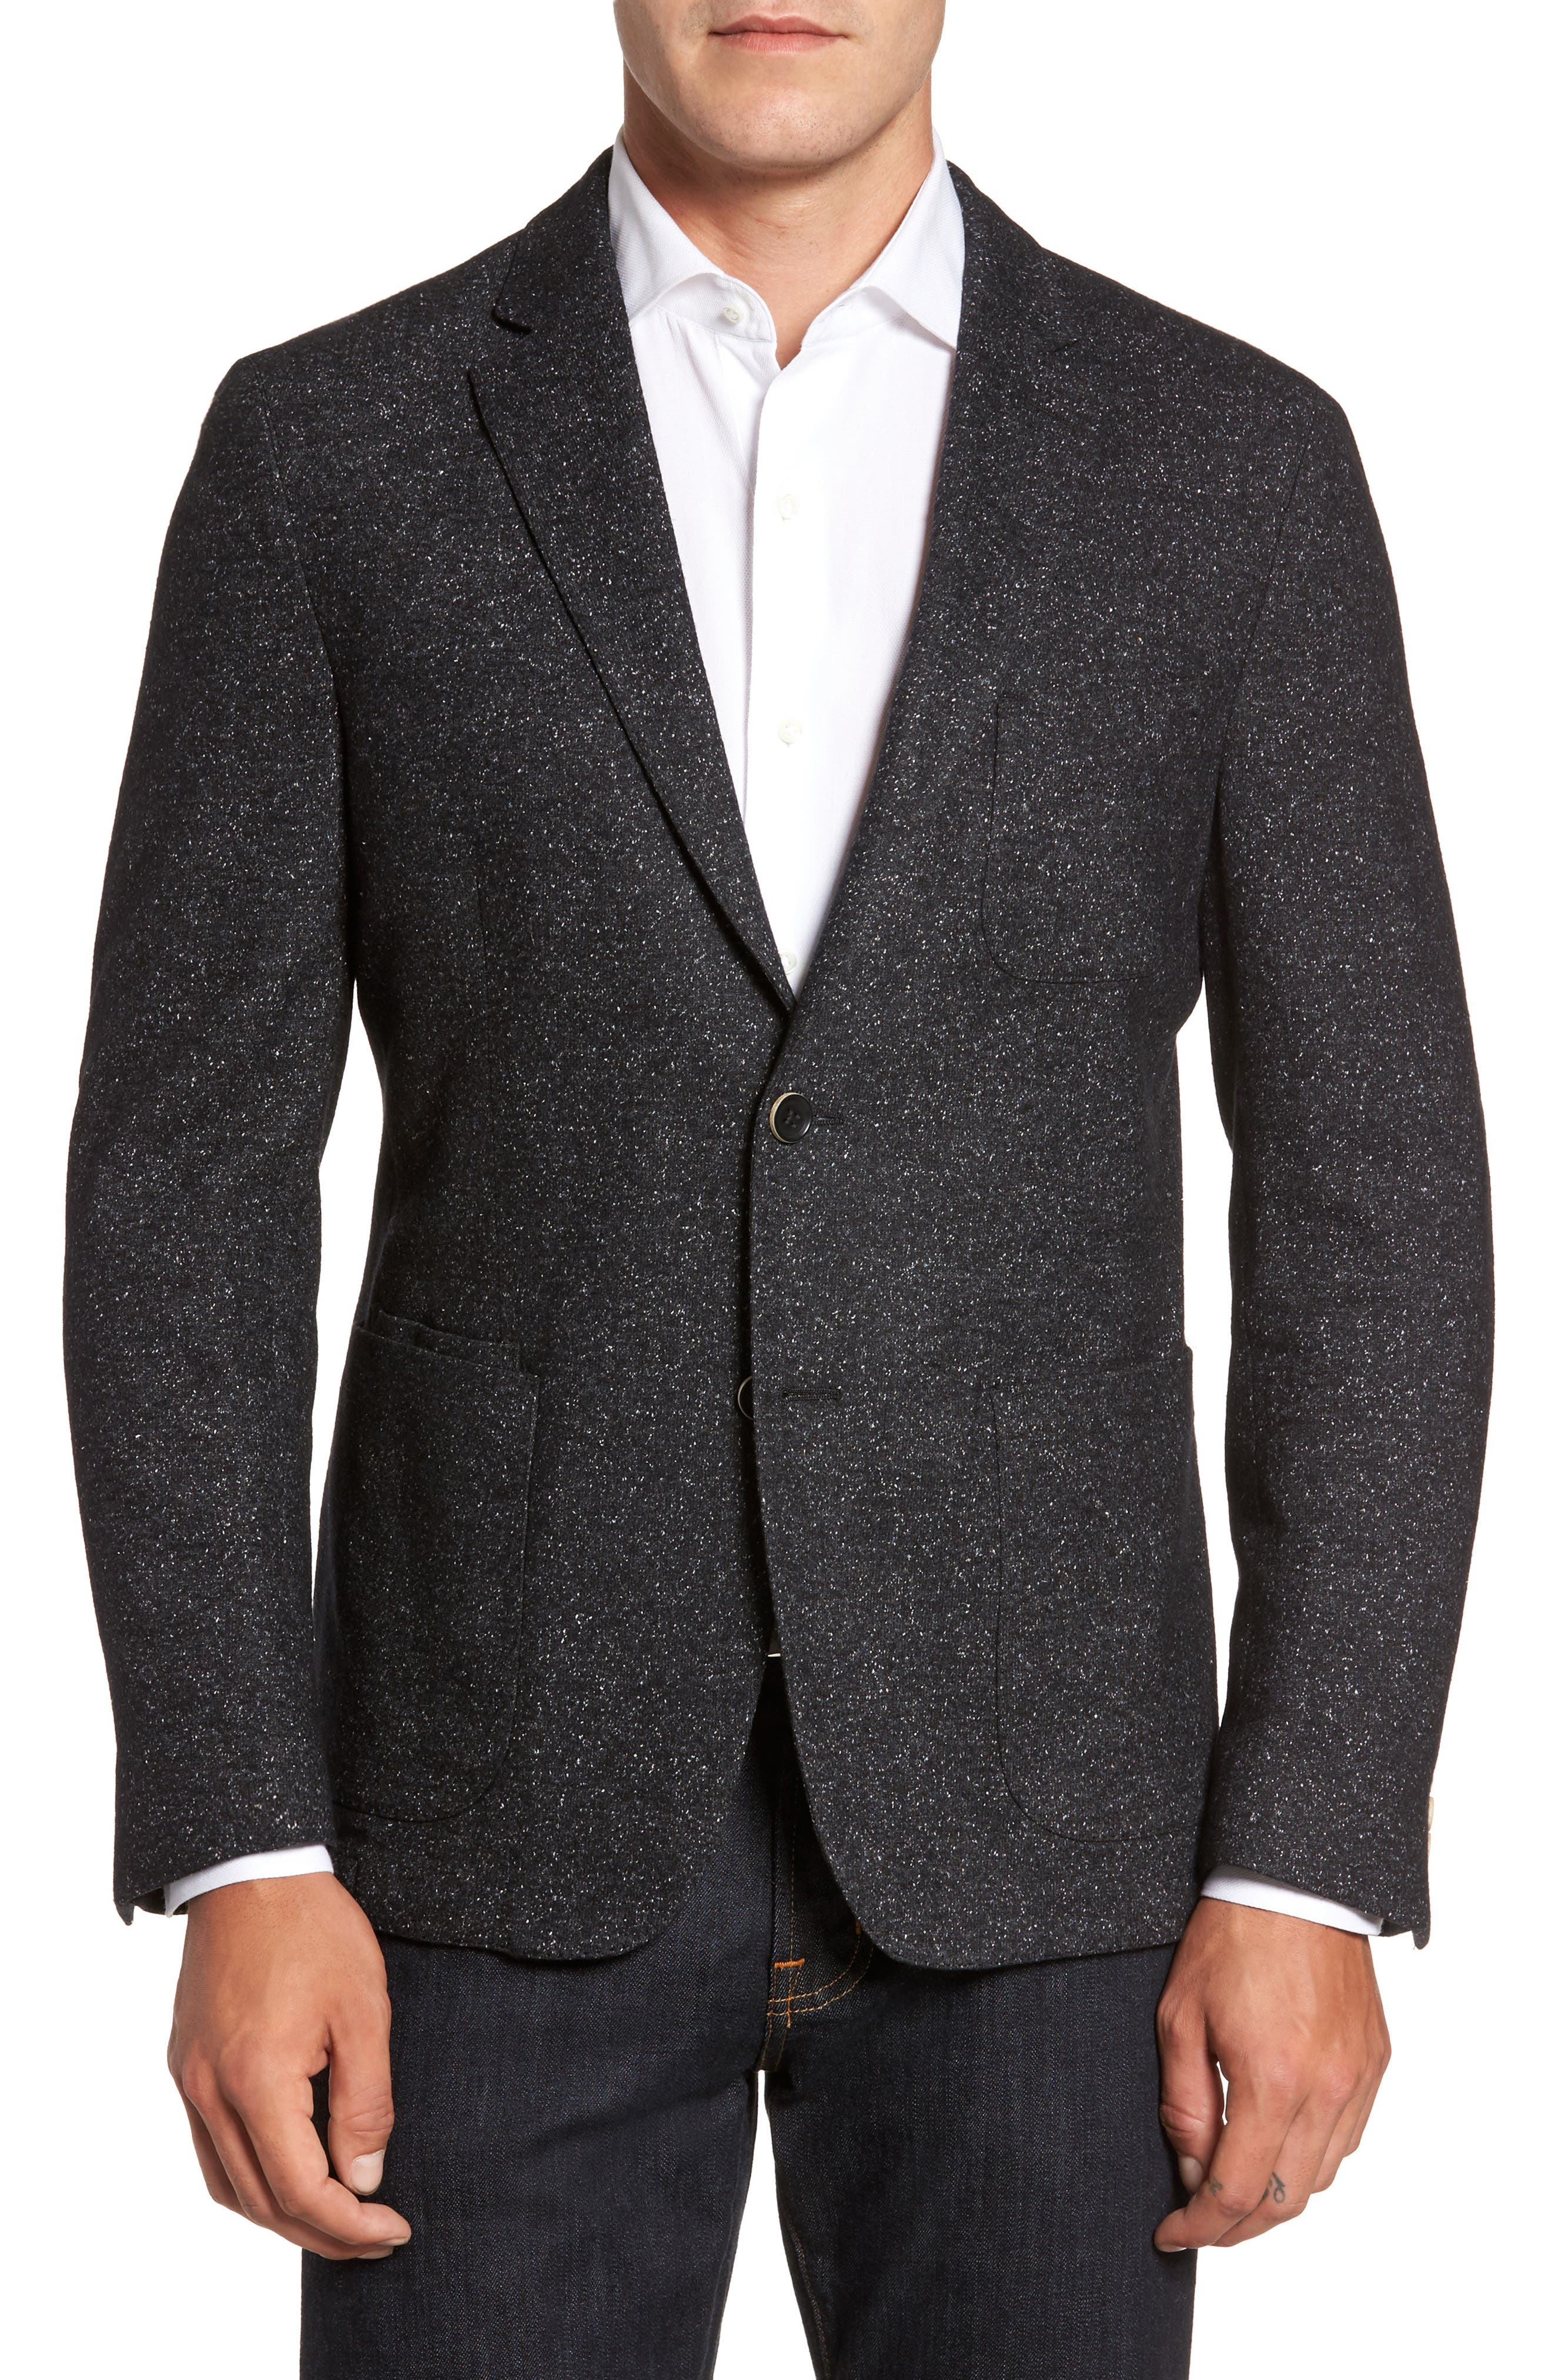 Alternate Image 1 Selected - FLYNT Donegal Classic Fit Suede Trim Jersey Sport Coat